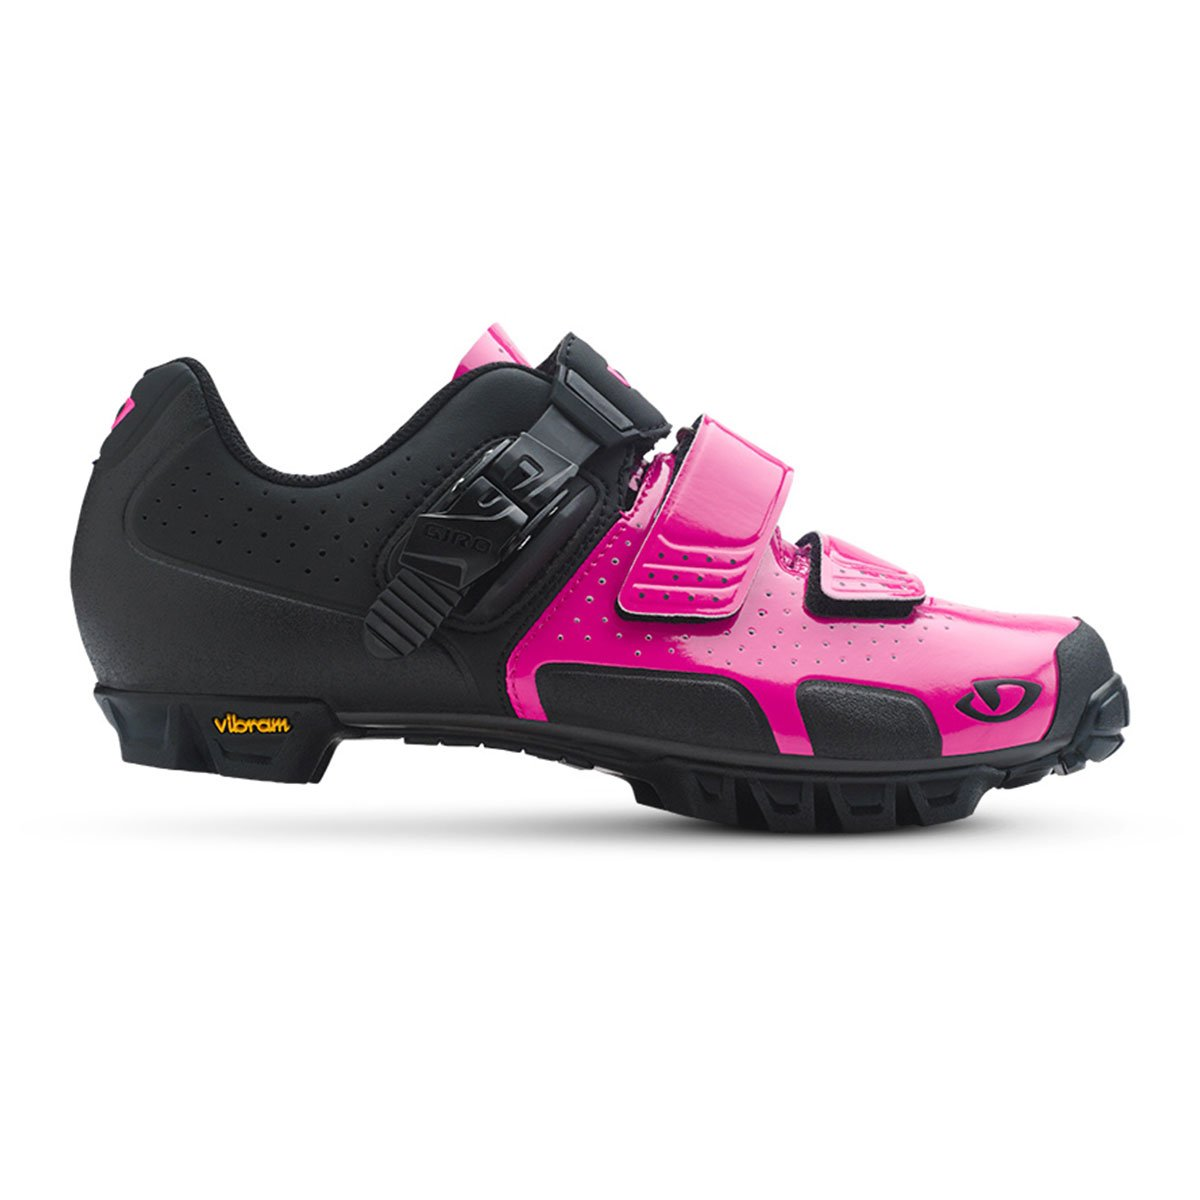 Giro SICA VR70 Women's Mountain Bike Shoes Bright Pink/Black 36